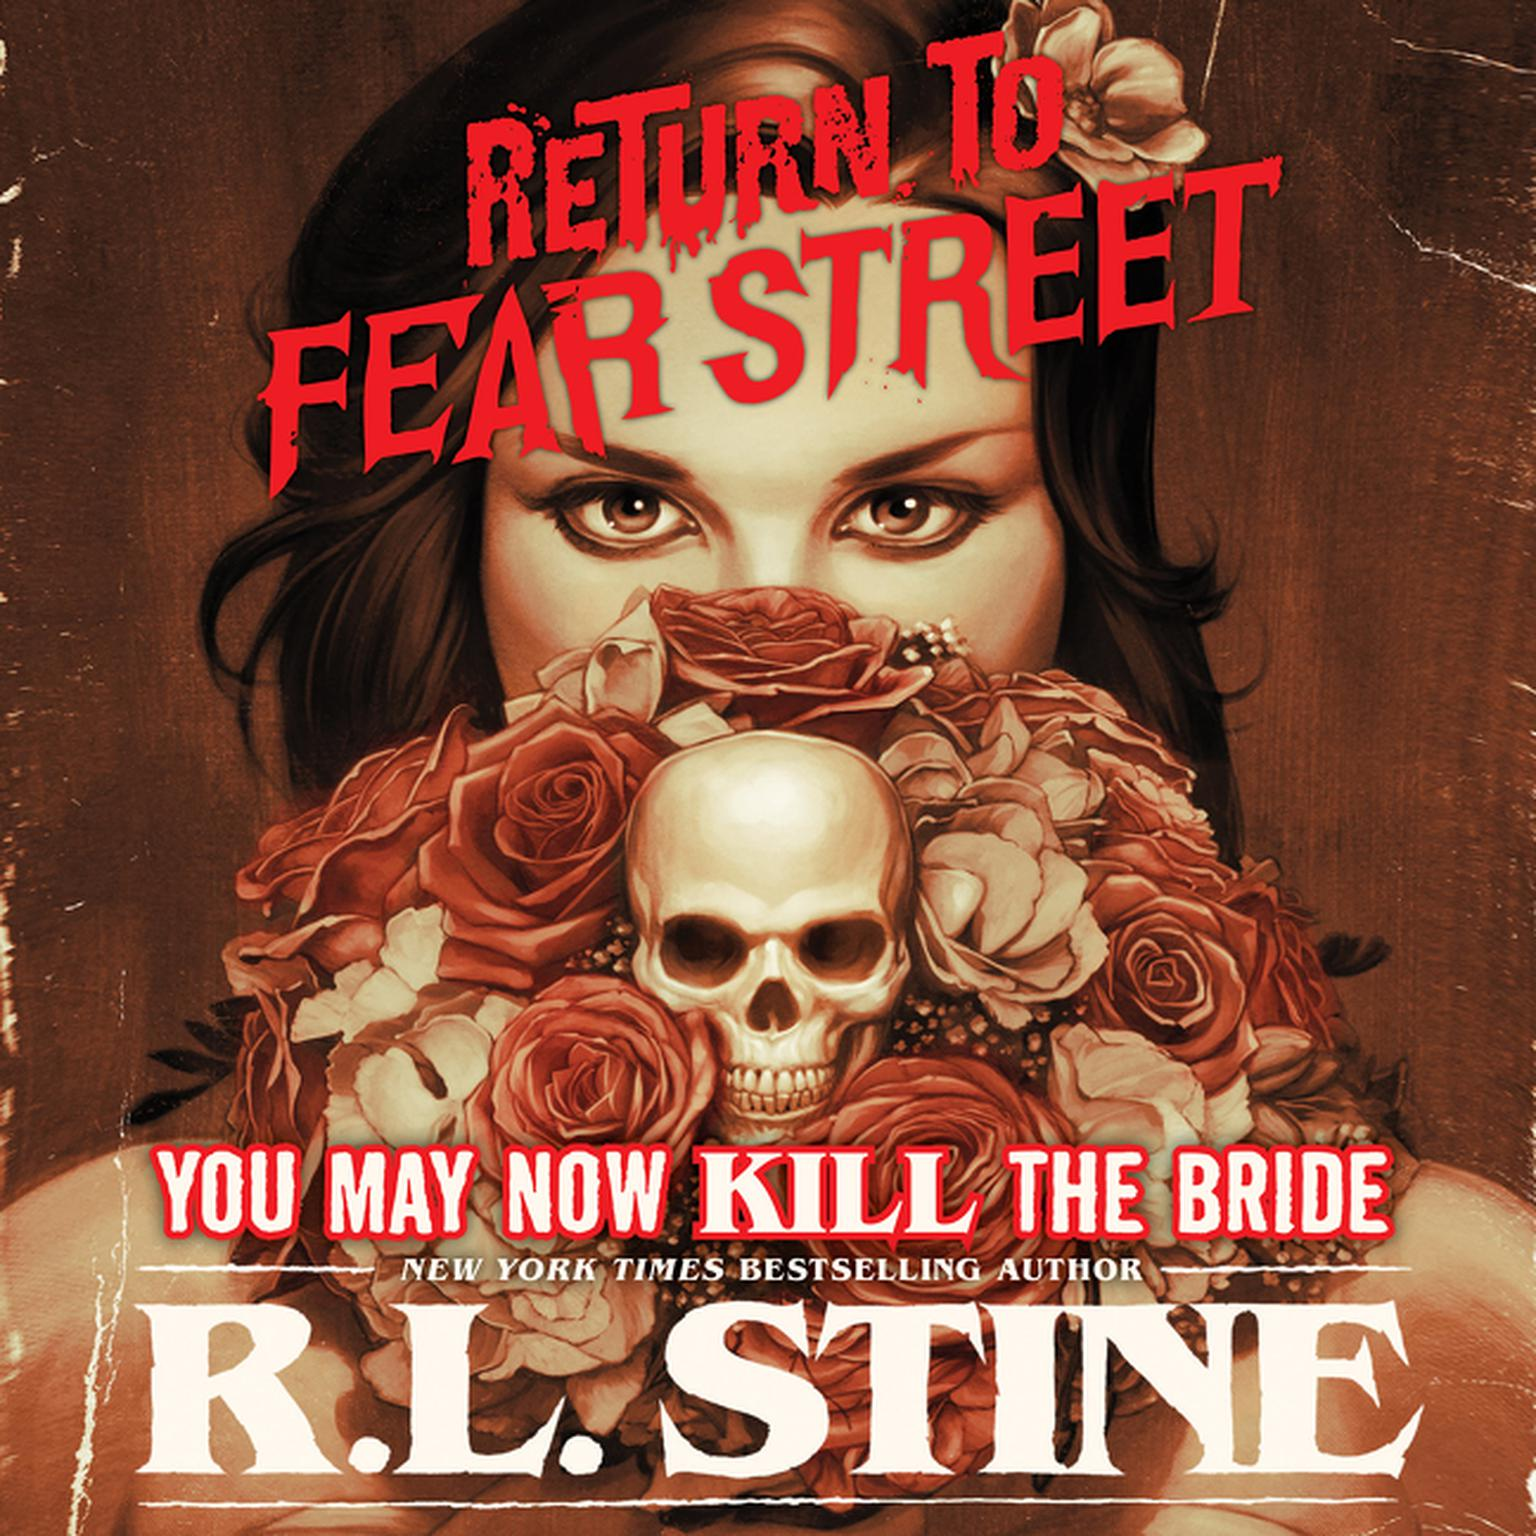 You May Now Kill the Bride: Return to Fear Street, Book 1 Audiobook, by R. L. Stine